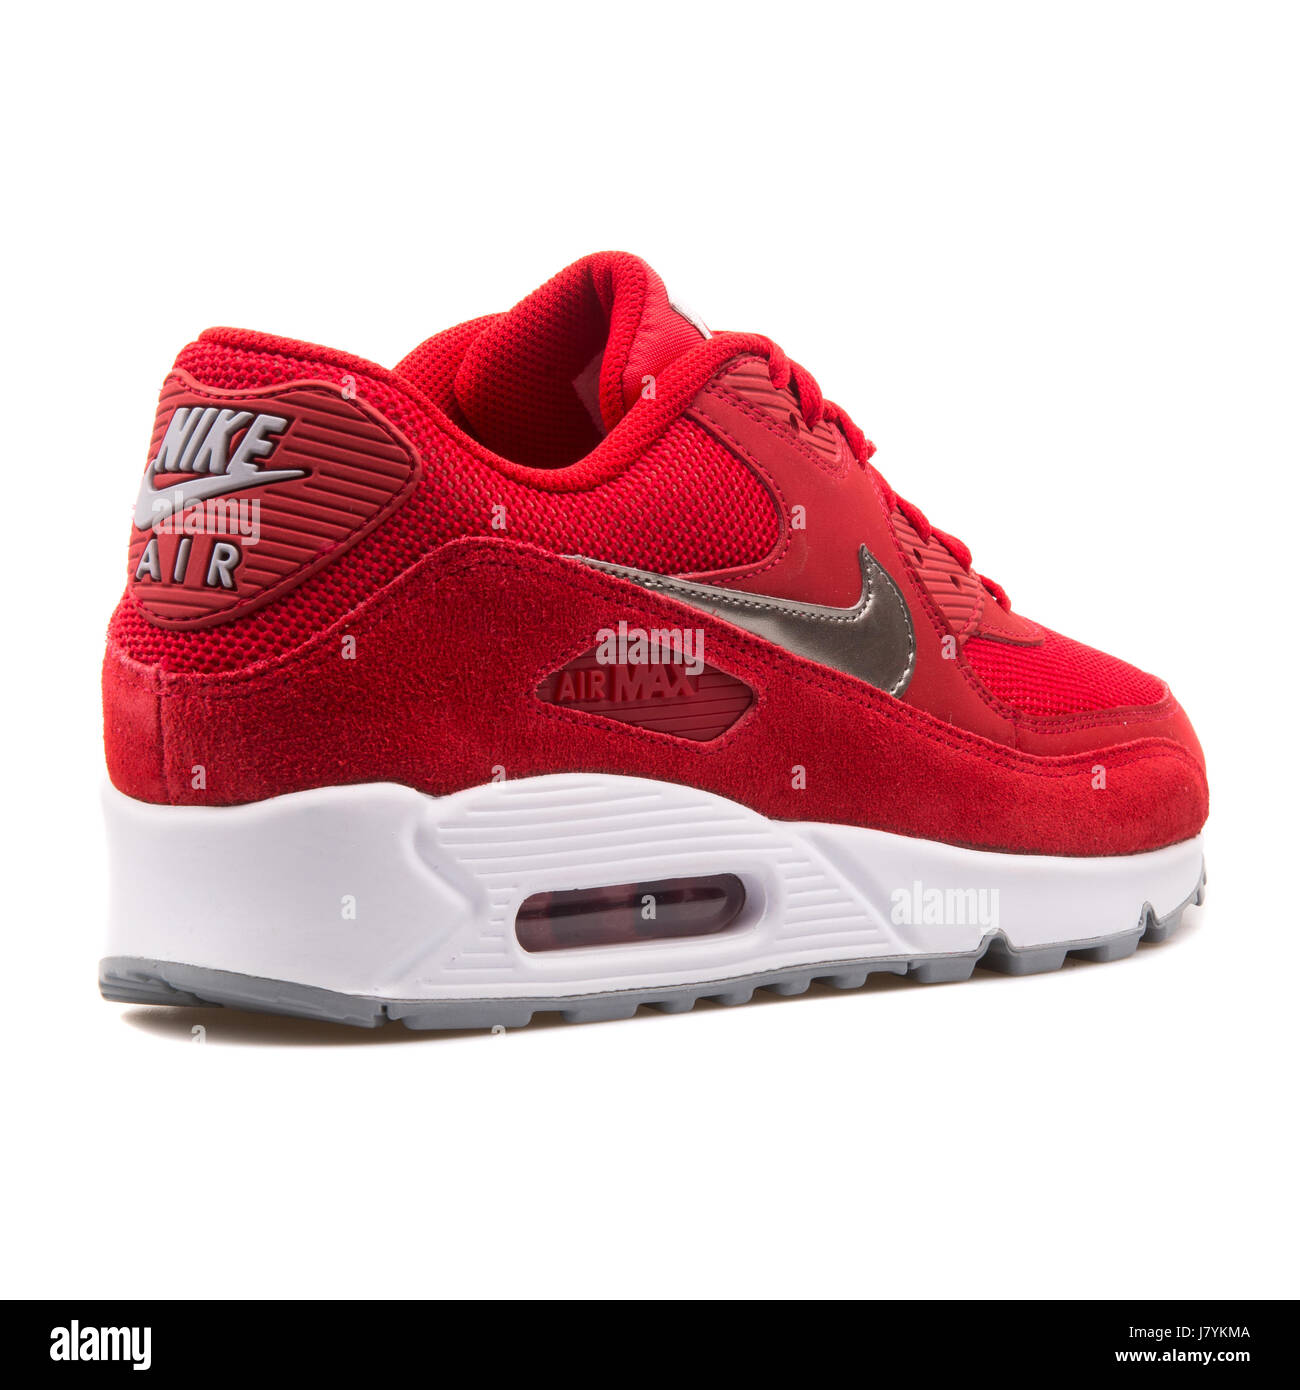 pick up e30e3 1901e Nike Air Max 90 Essential Red Men s Running Sneakers - 537384-602